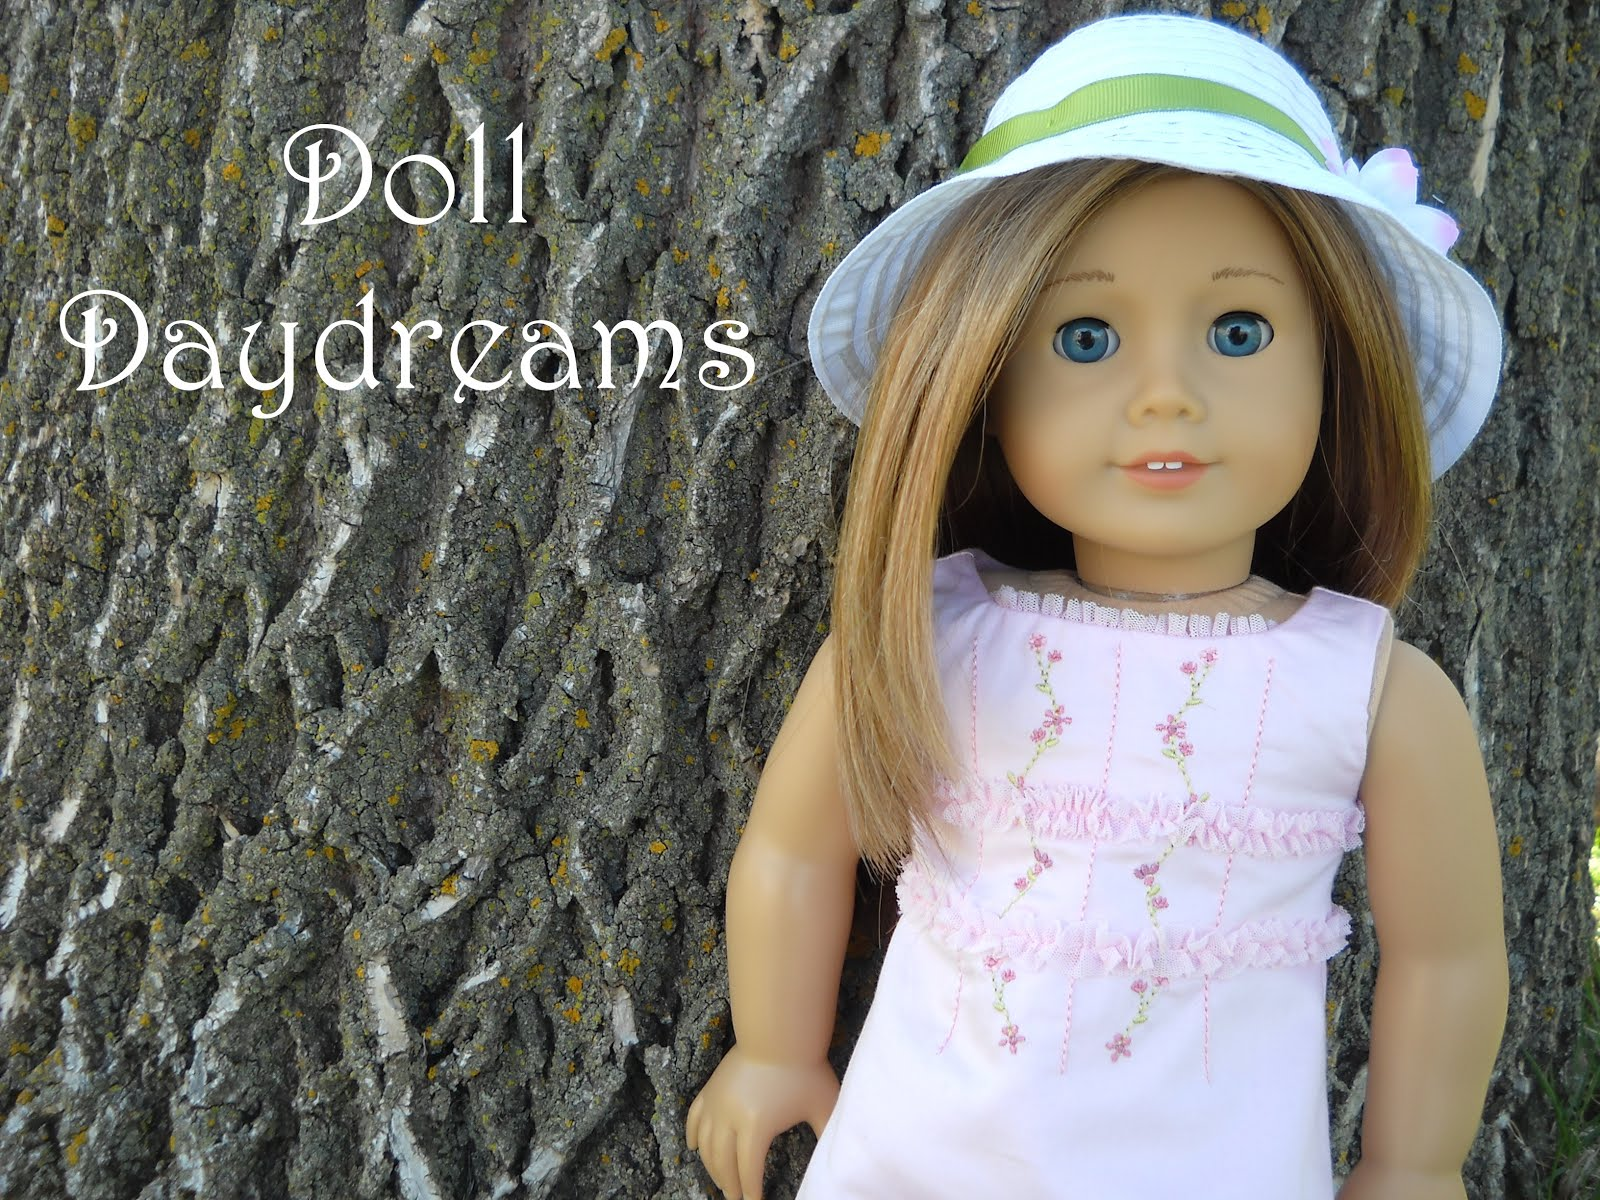 Doll Daydreams